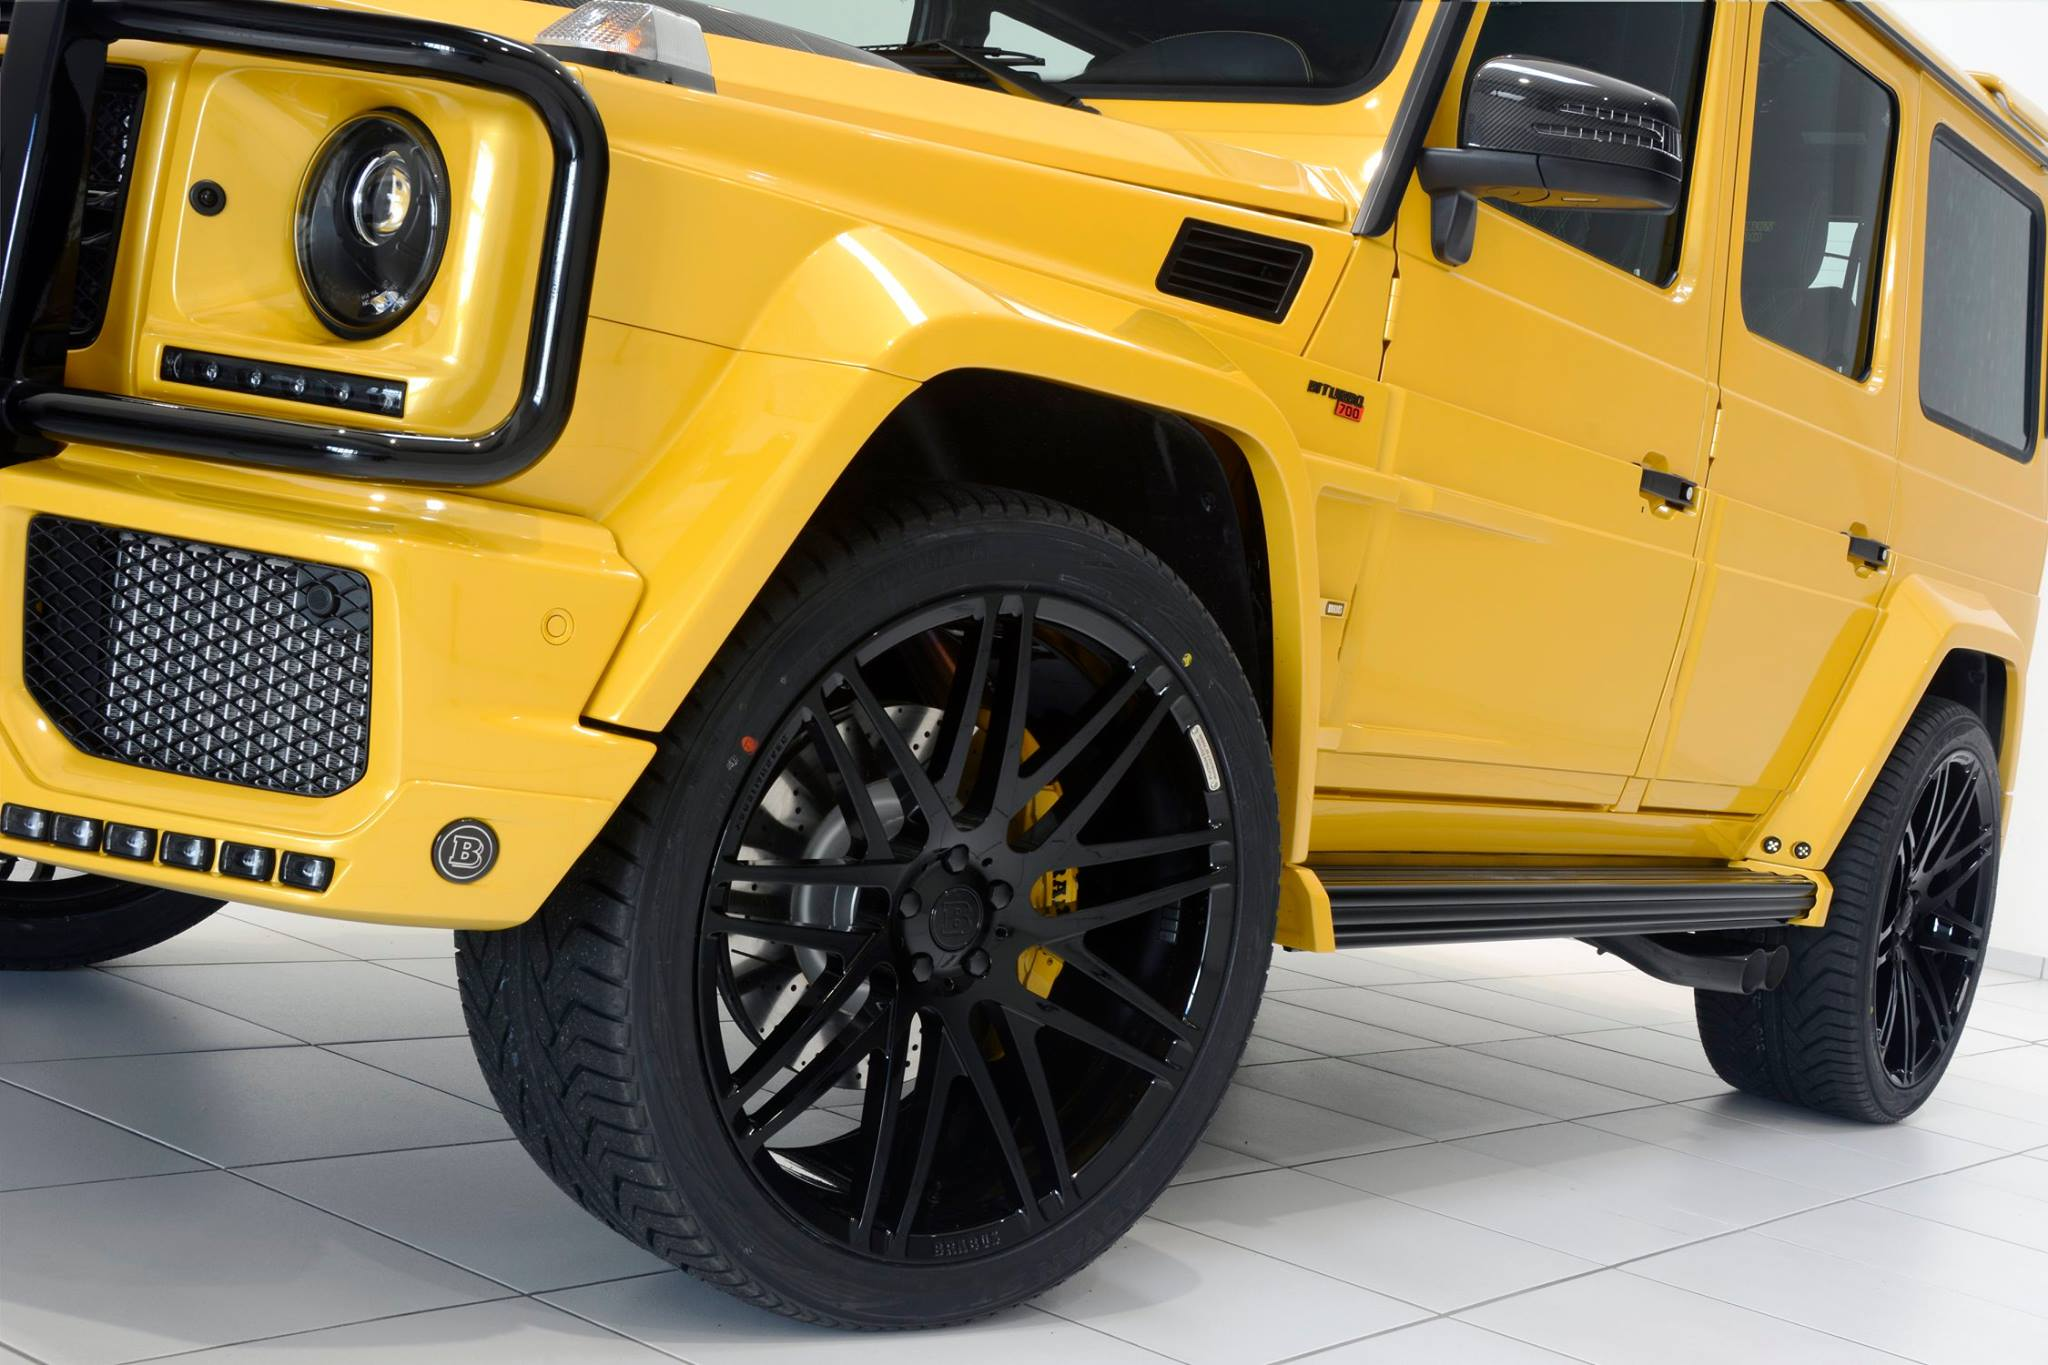 Mercedes G63 2018 >> Brabus G63 Widestar 700 – subtle, this is certainly not Paul Tan - Image 478480